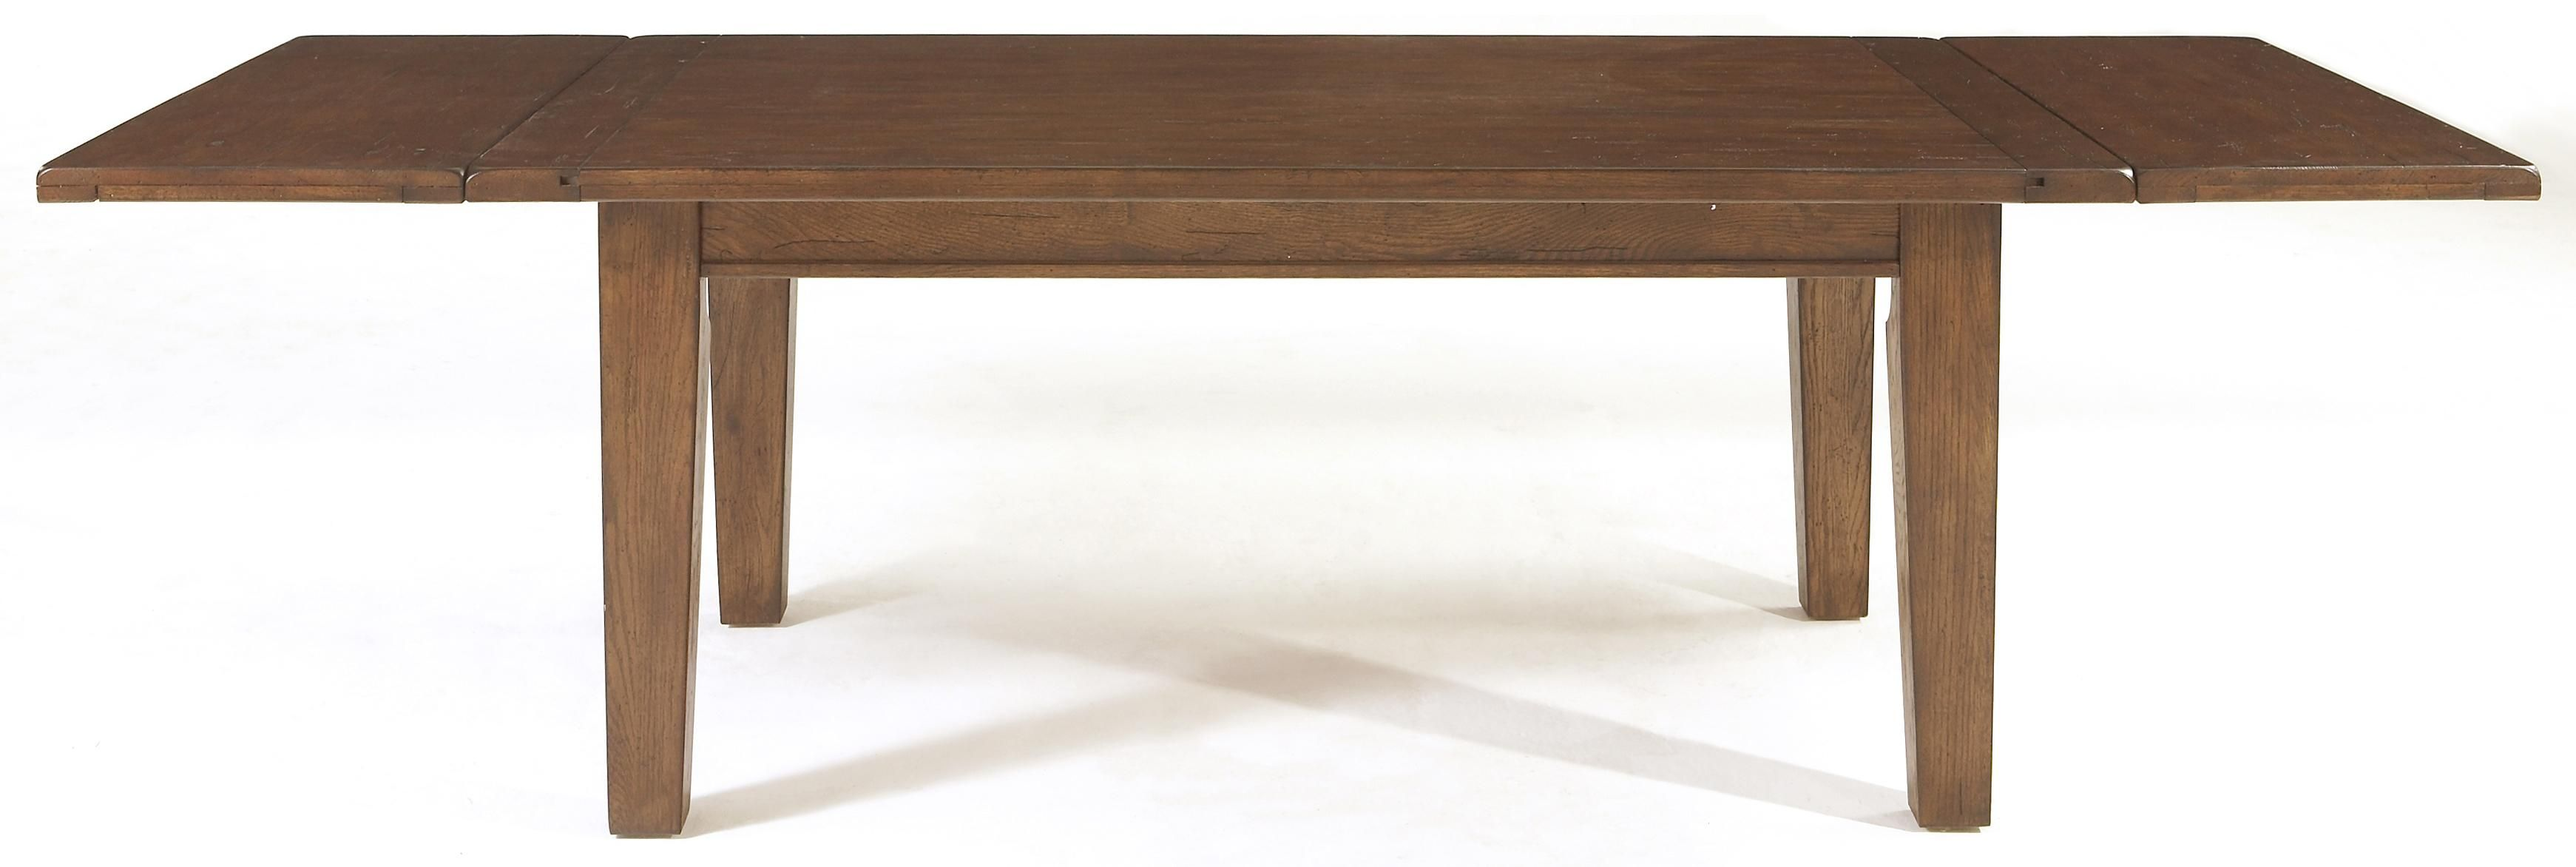 Dining Table Legs Image By Rebecca Bramblet On House Coffee Table Square Coffee Table